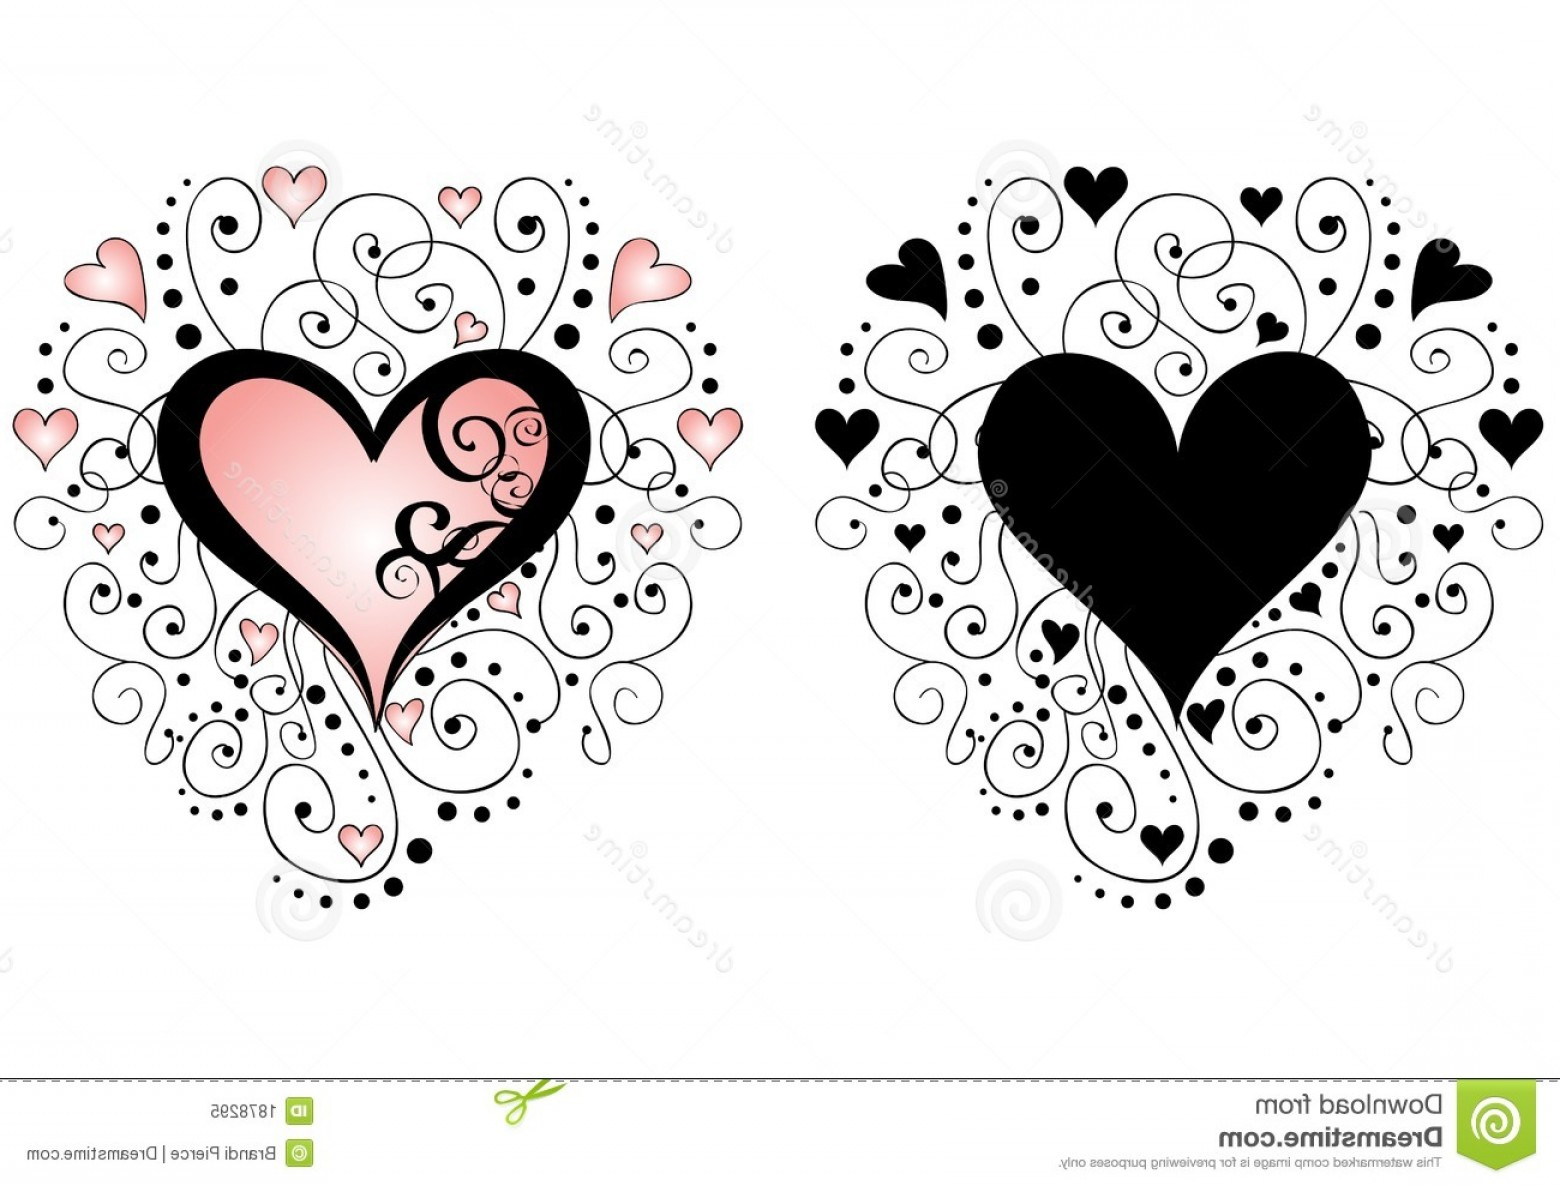 Love Heart Swirl Vector: Royalty Free Stock Photo Swirls Hearts Vector Image